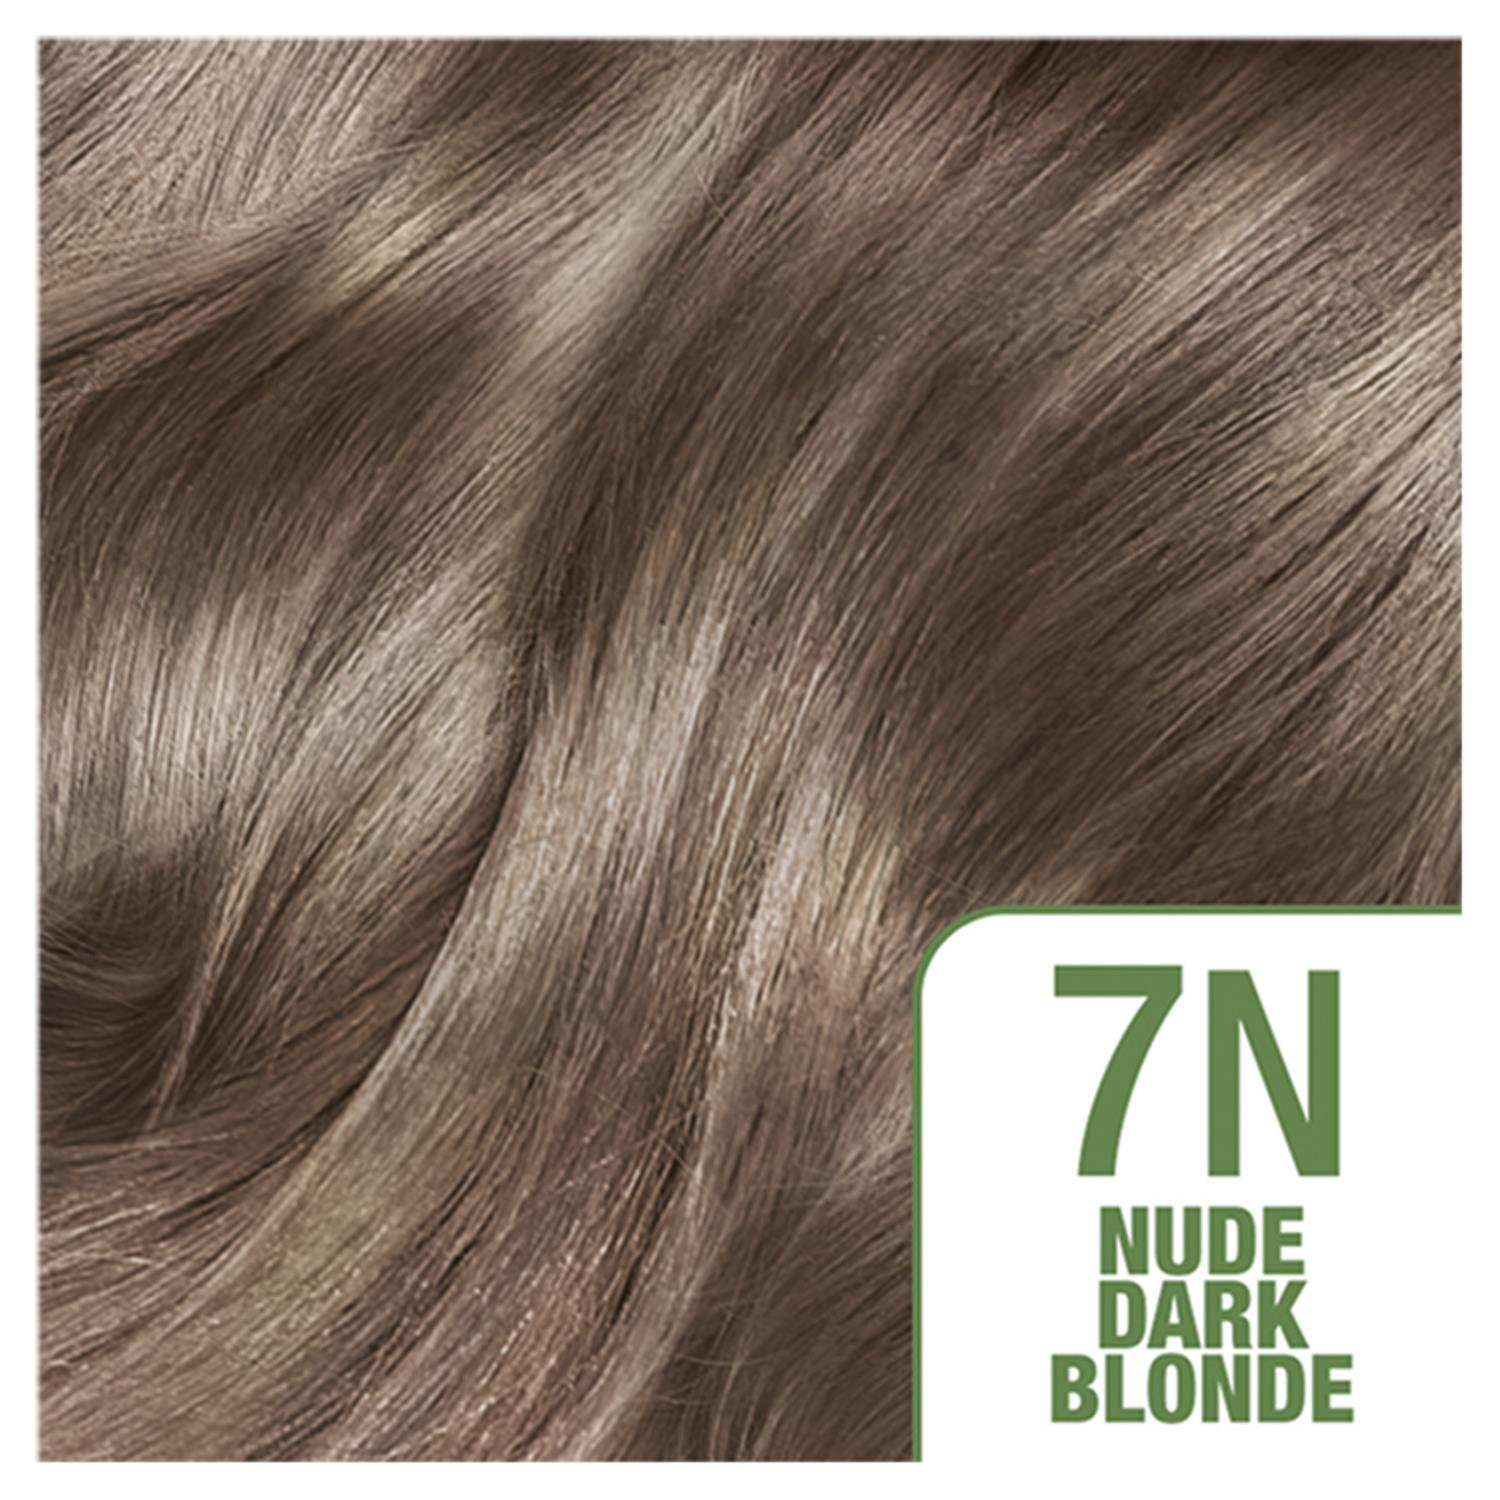 thumbnail 248 - 3 Pack Garnier Nutrisse Permanent Hair Dye With Different Shades